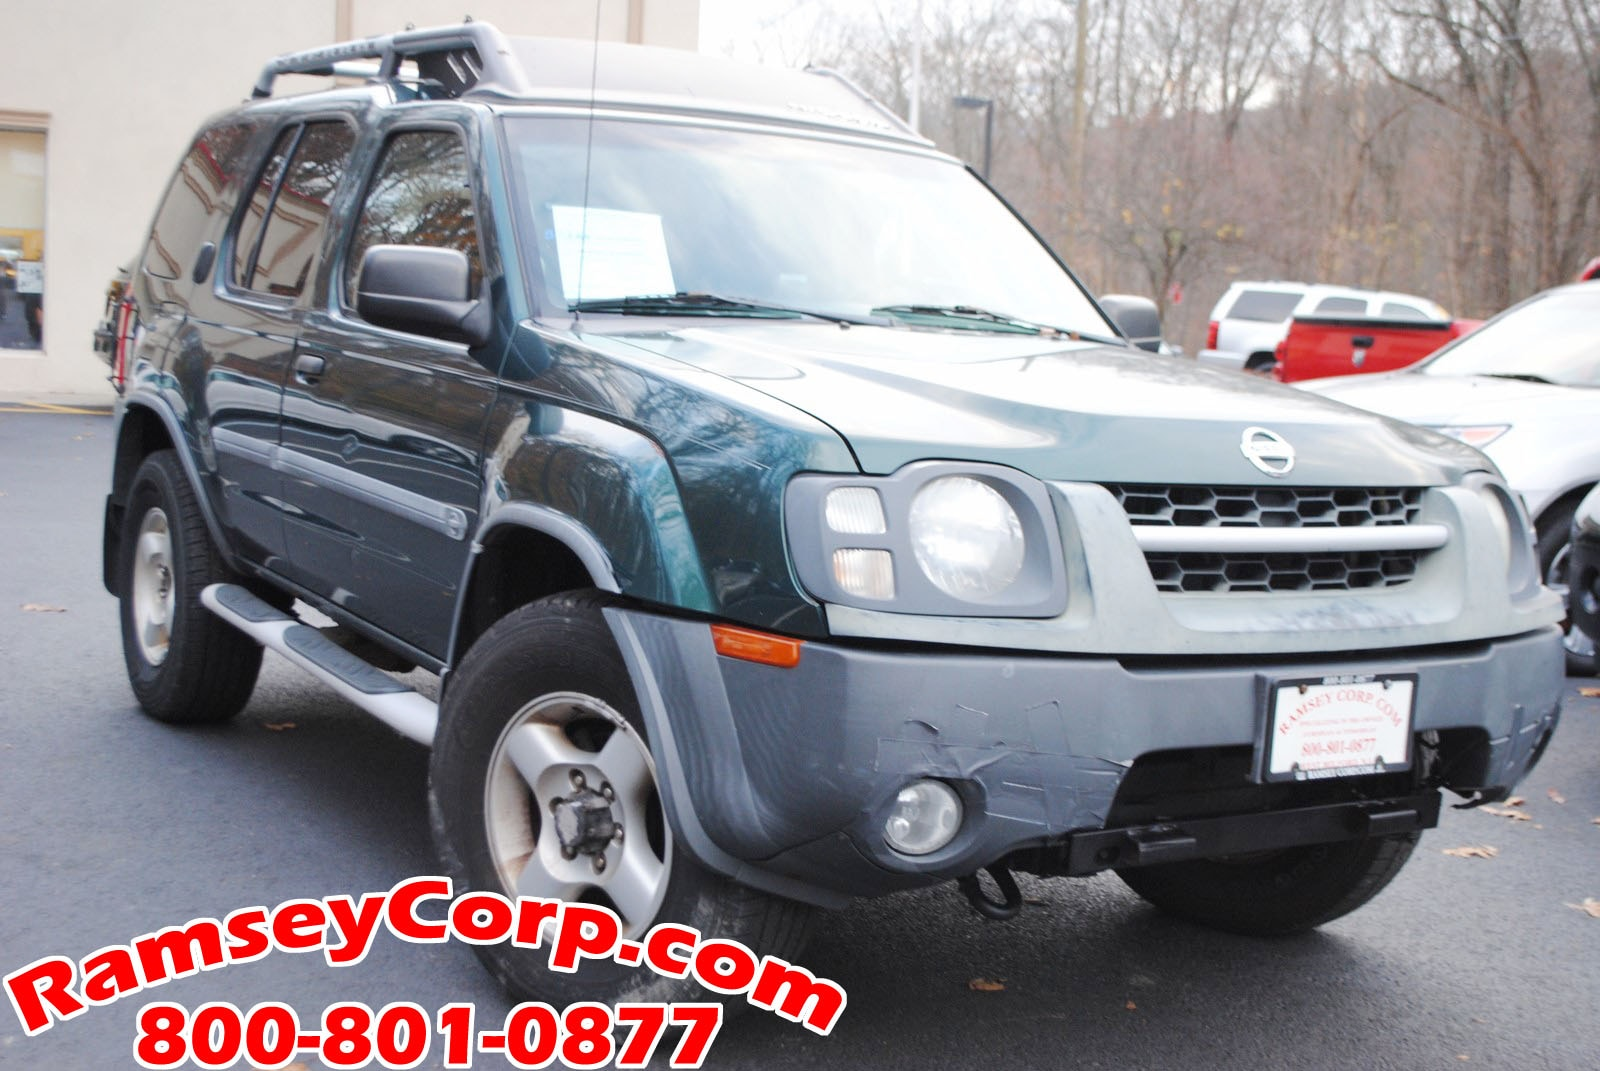 02 Nissan Xterra Mpg Car Maintenance Console Cover Replacement 2011 Fuel Filter Used 2002 For Sale West Milford Njrhramseycorp At Tvtuner